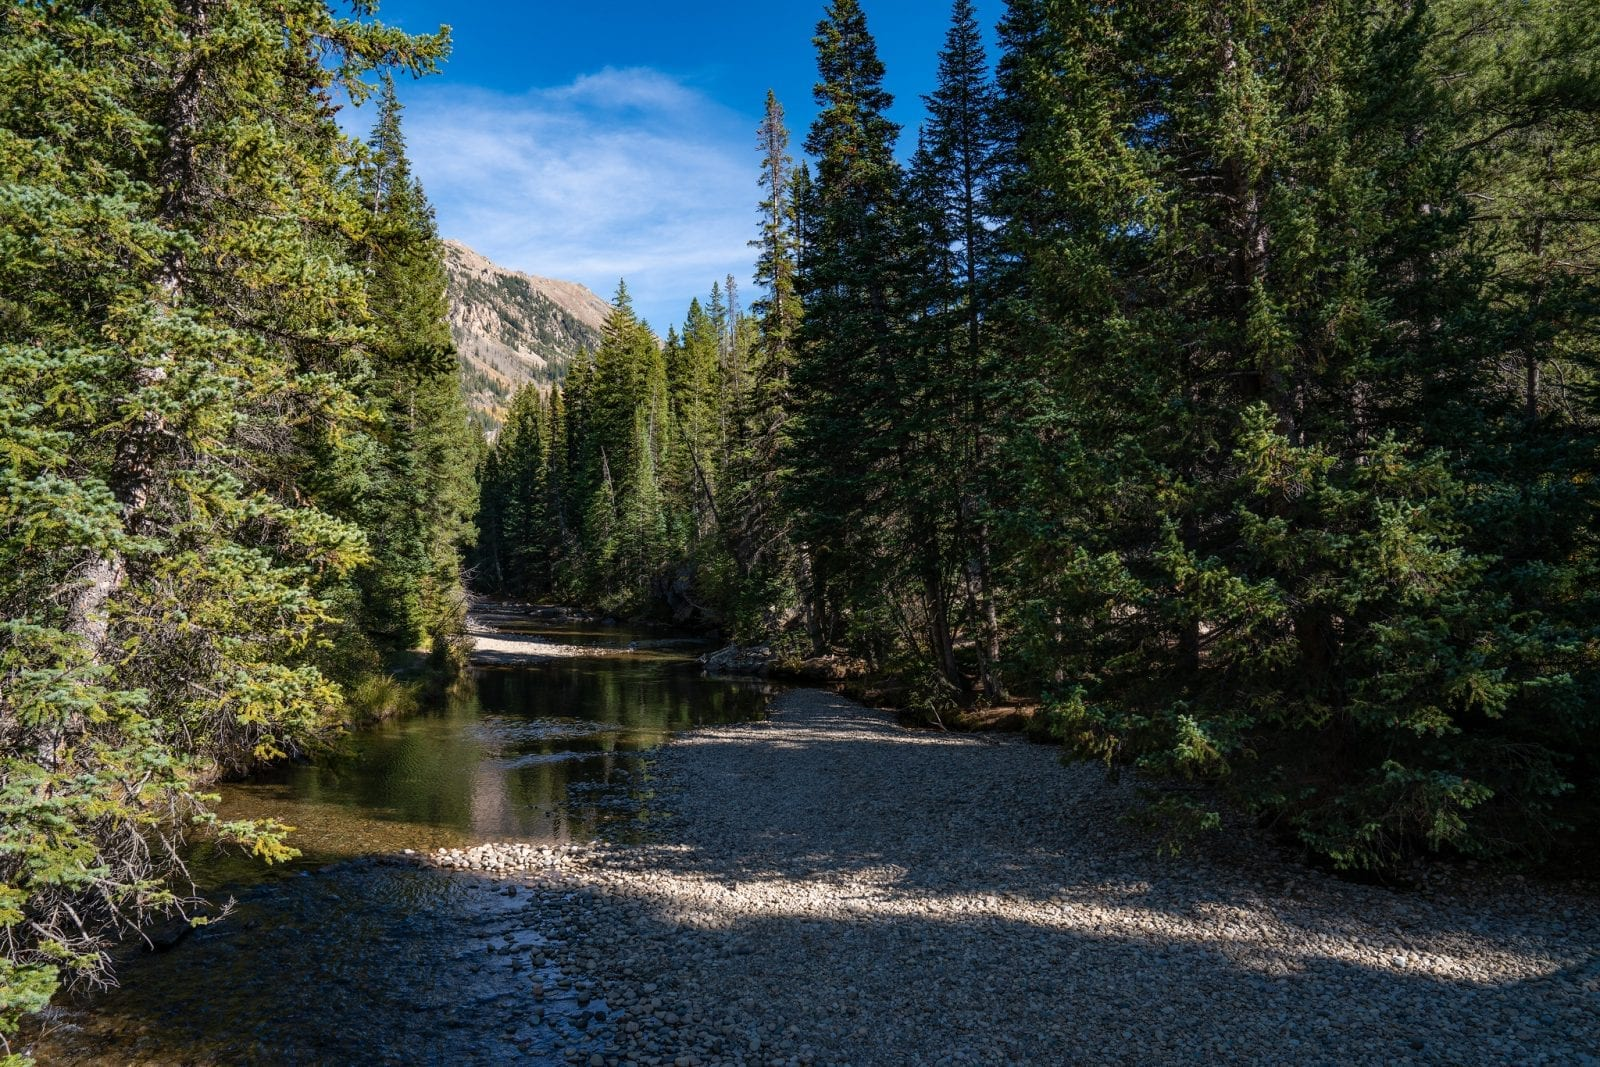 Image of the Roaring Fork River near Independence Pass in Colorado